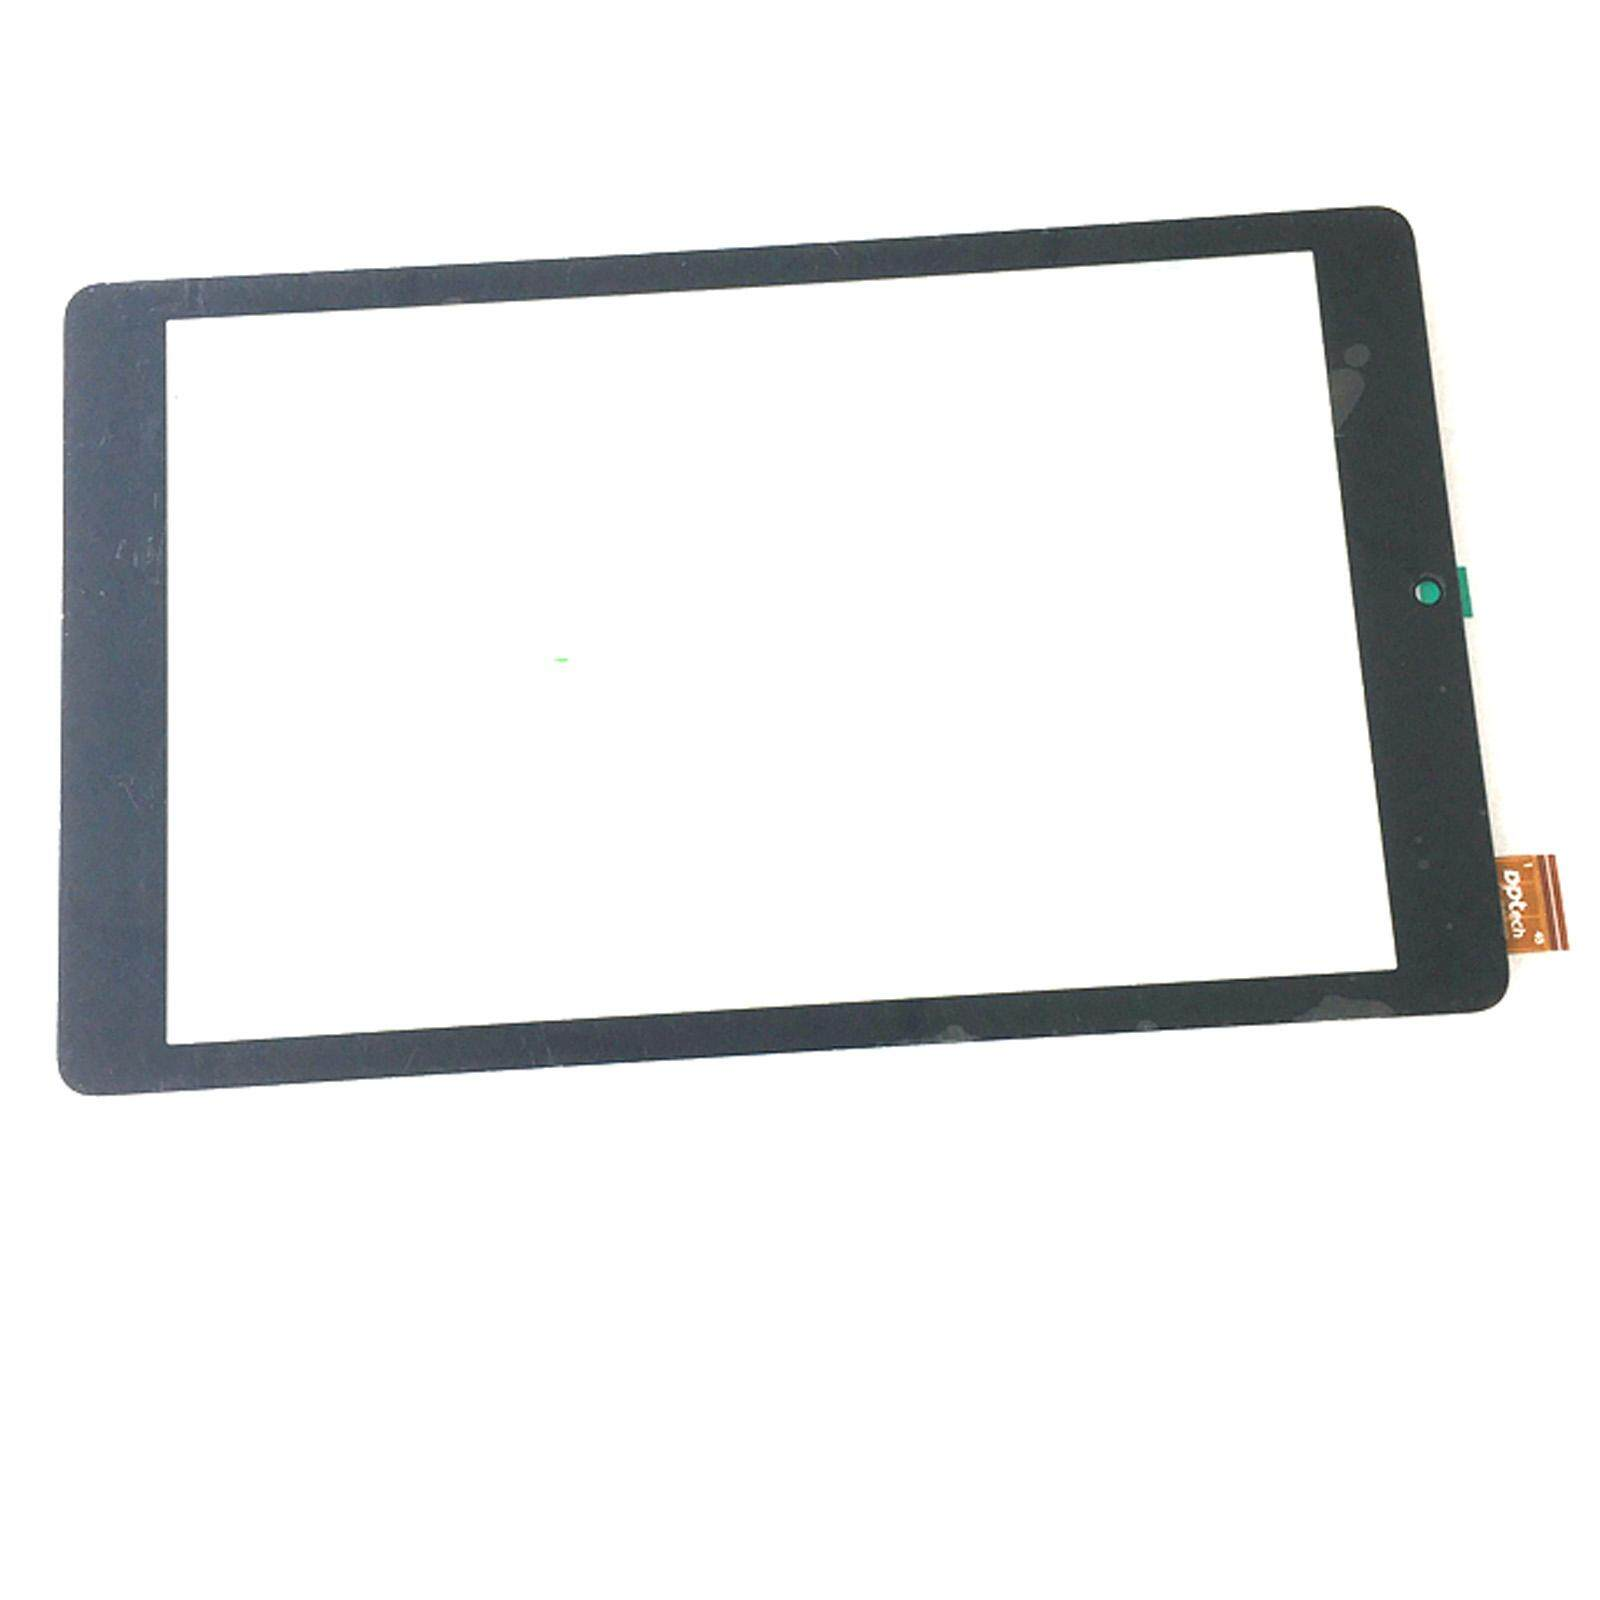 Black color EUTOPING® New 7 inch touch screen panel For Alcatel OneTouch Pixi 3 (8) 4g 8070 - intl